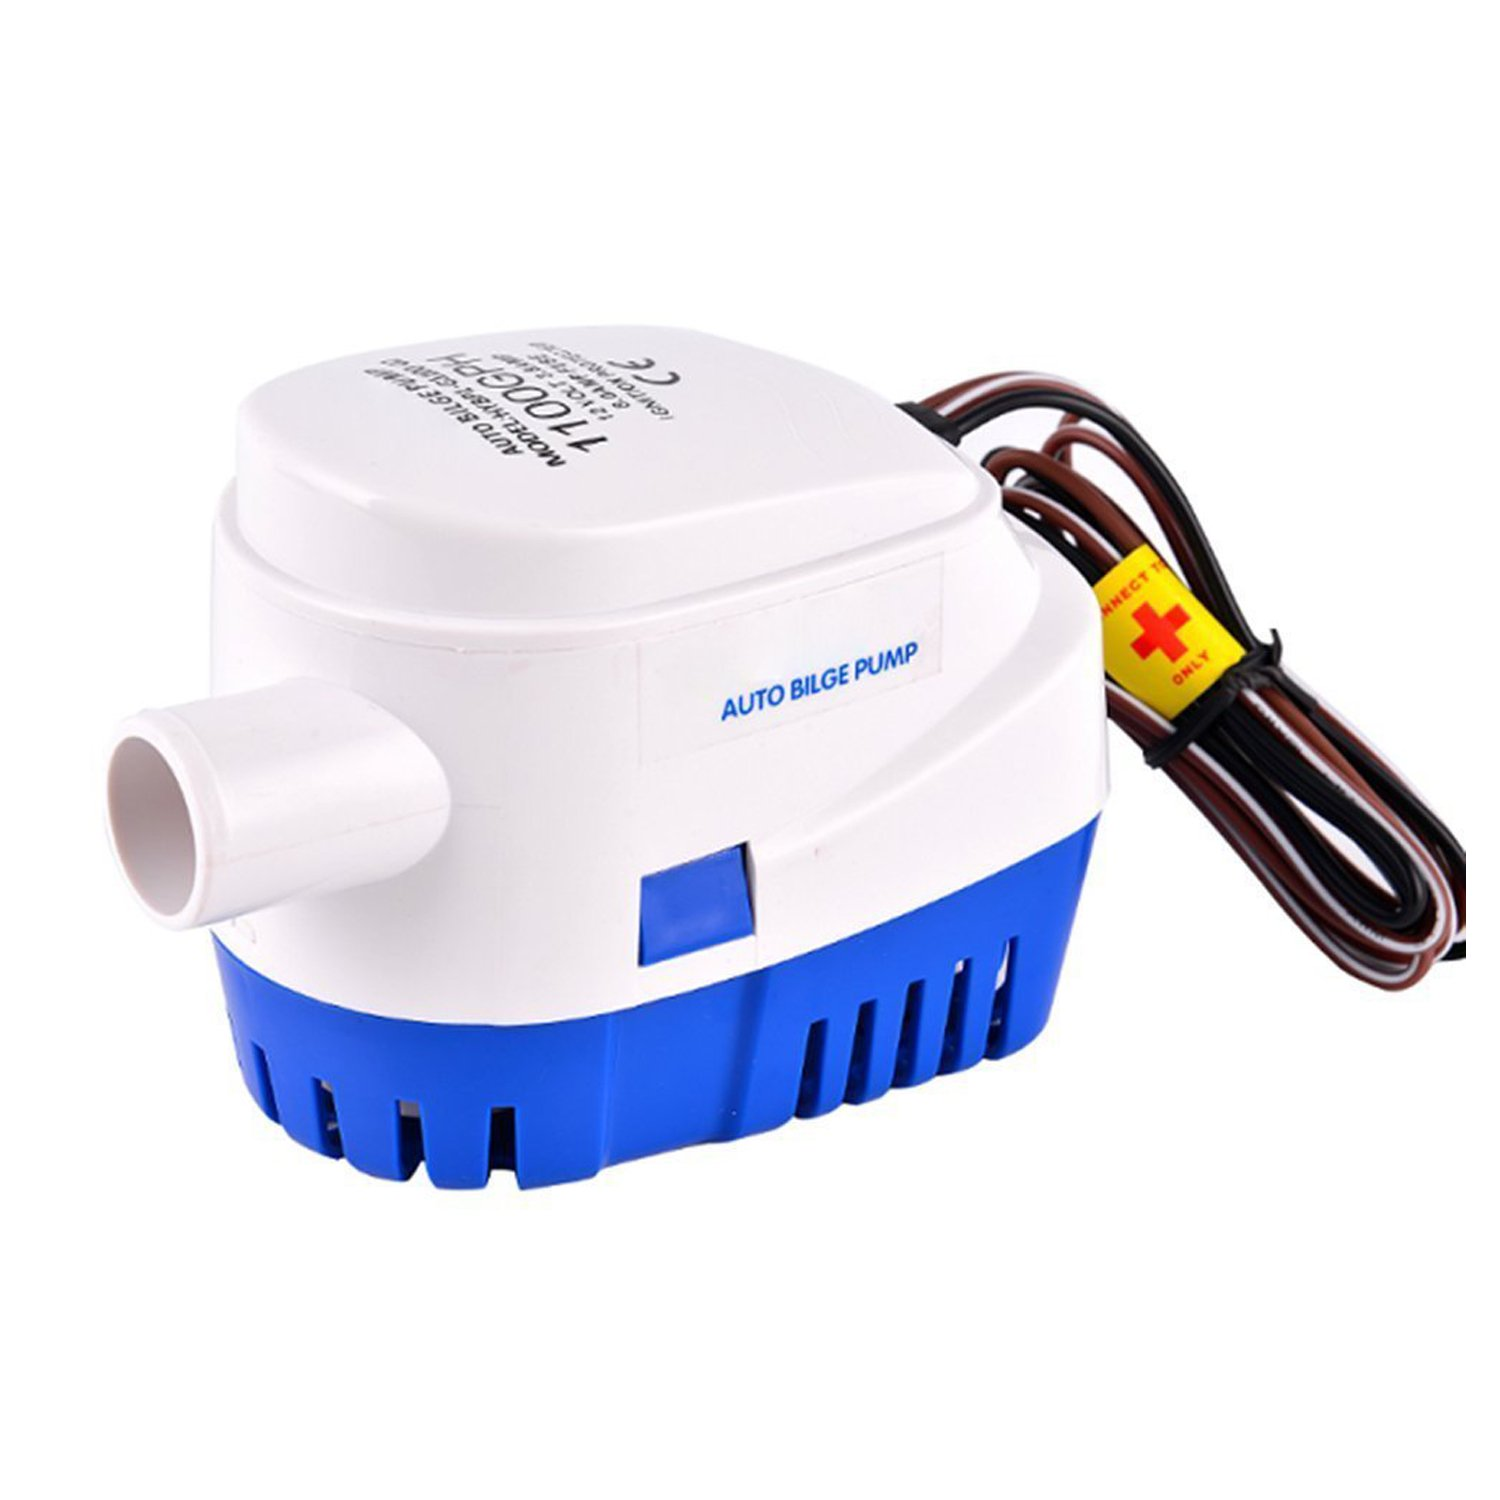 IUMÉ Boat Bilge Water Pump, Generic Automatic Submersible 12v 1100gph DC All-in-one Marine Bilge Auto Yacht with Float Switch Current 3.8A White & Blue by IUMÉ